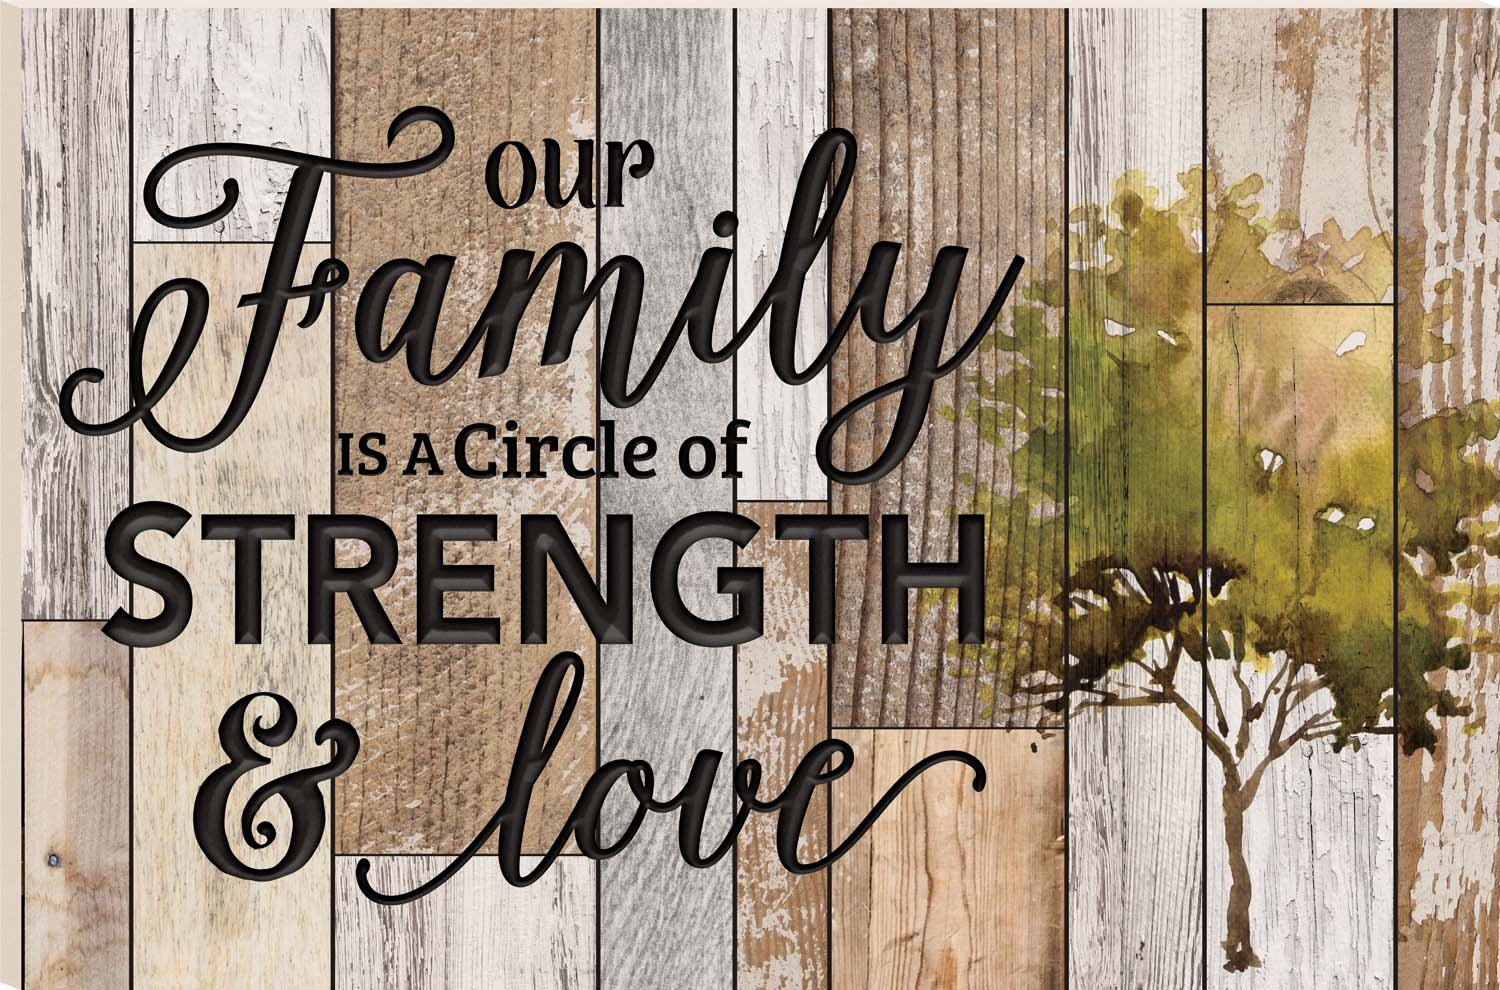 Our Family Is A Circle Of Strength And Love Watercolor Tree 23.75 x 35.9 Faux Distressed Wood Barn Board Wall Mounted Sign